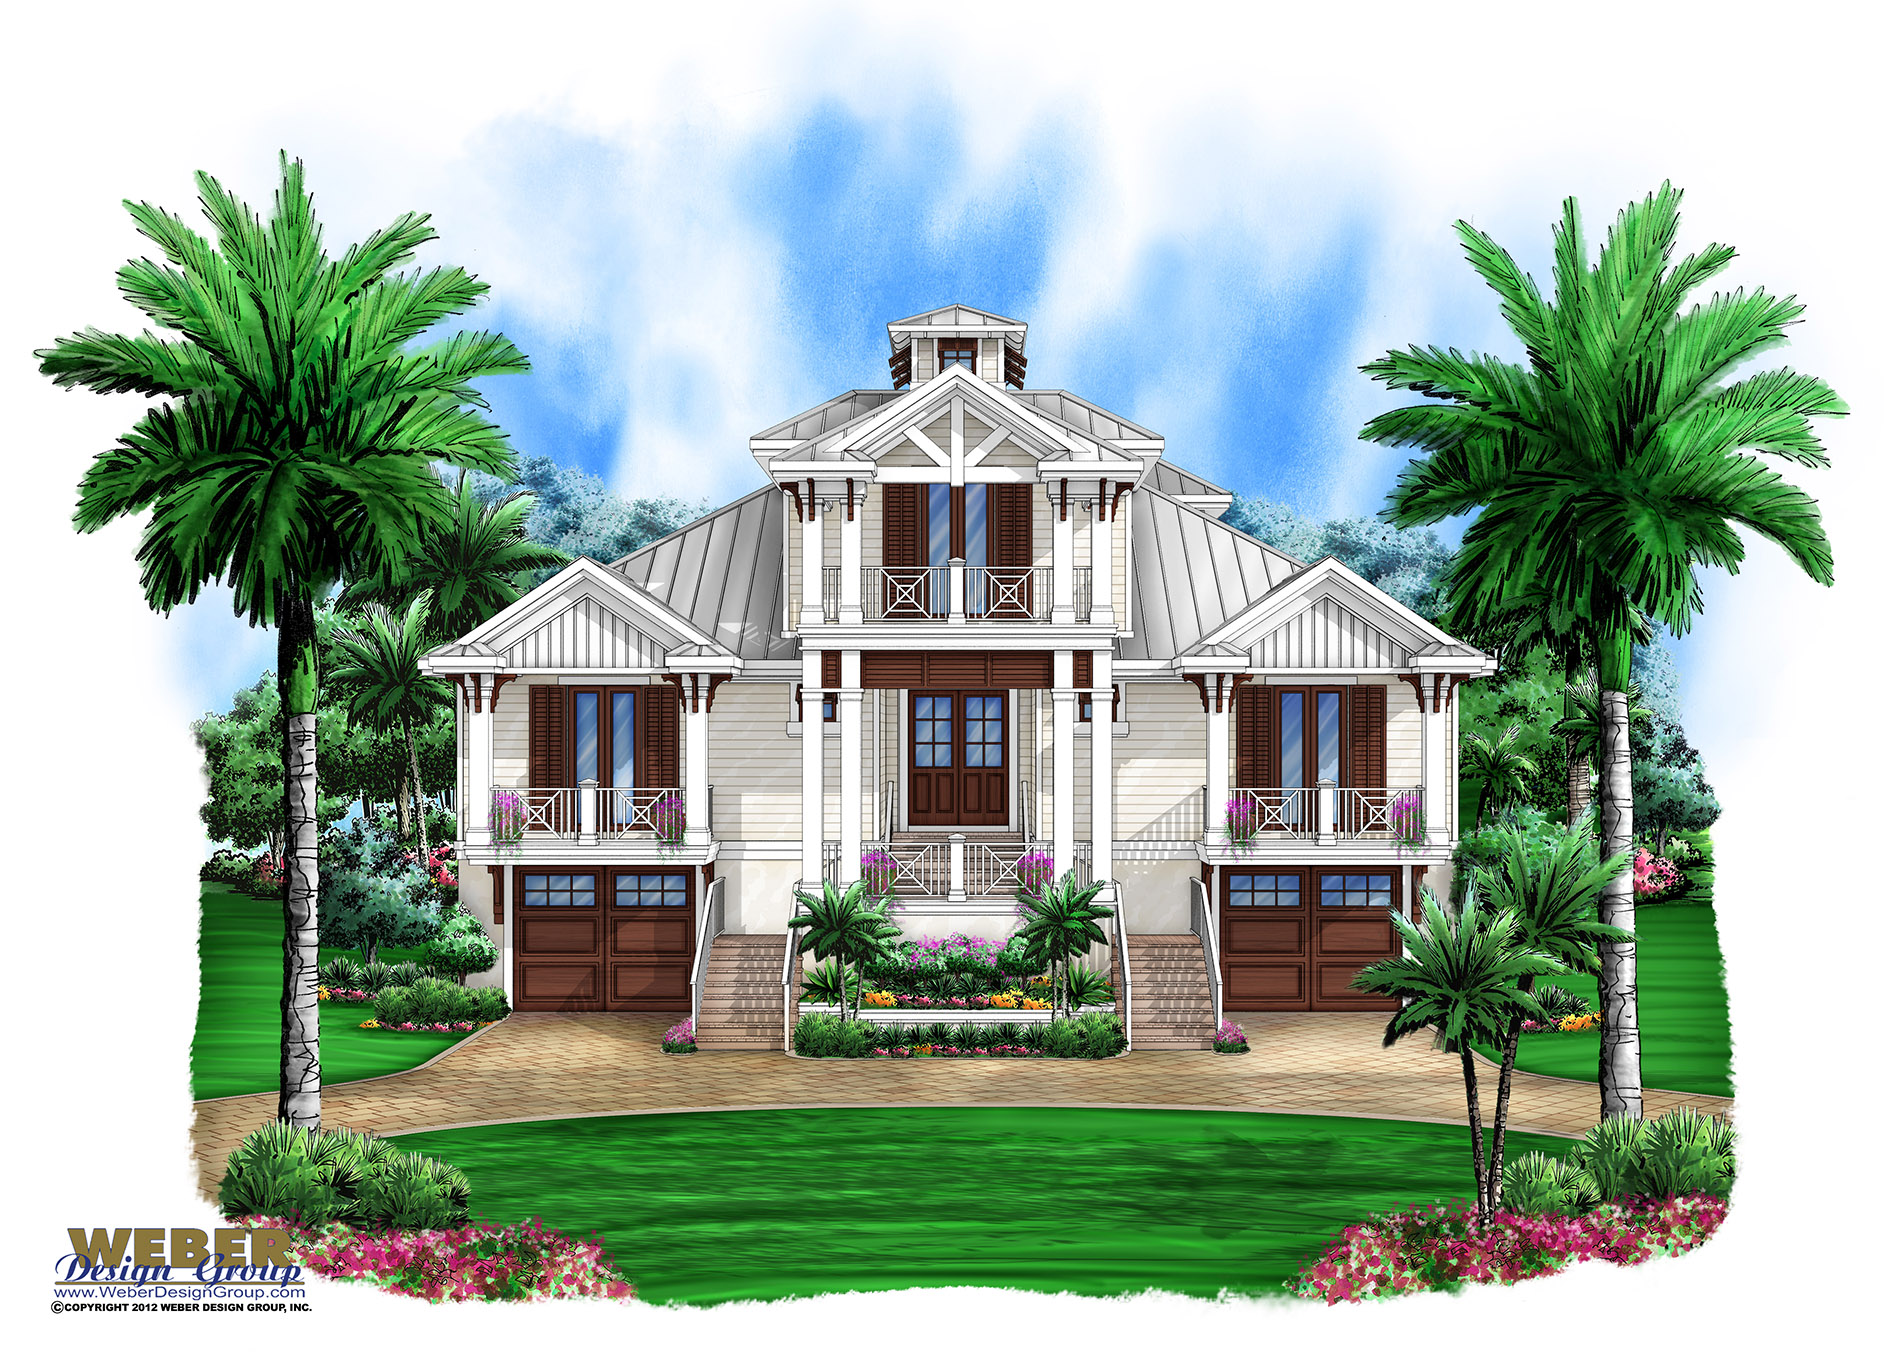 3 story old florida house plan beach outdoor living lanai pool detail - Florida Coastal House Plans